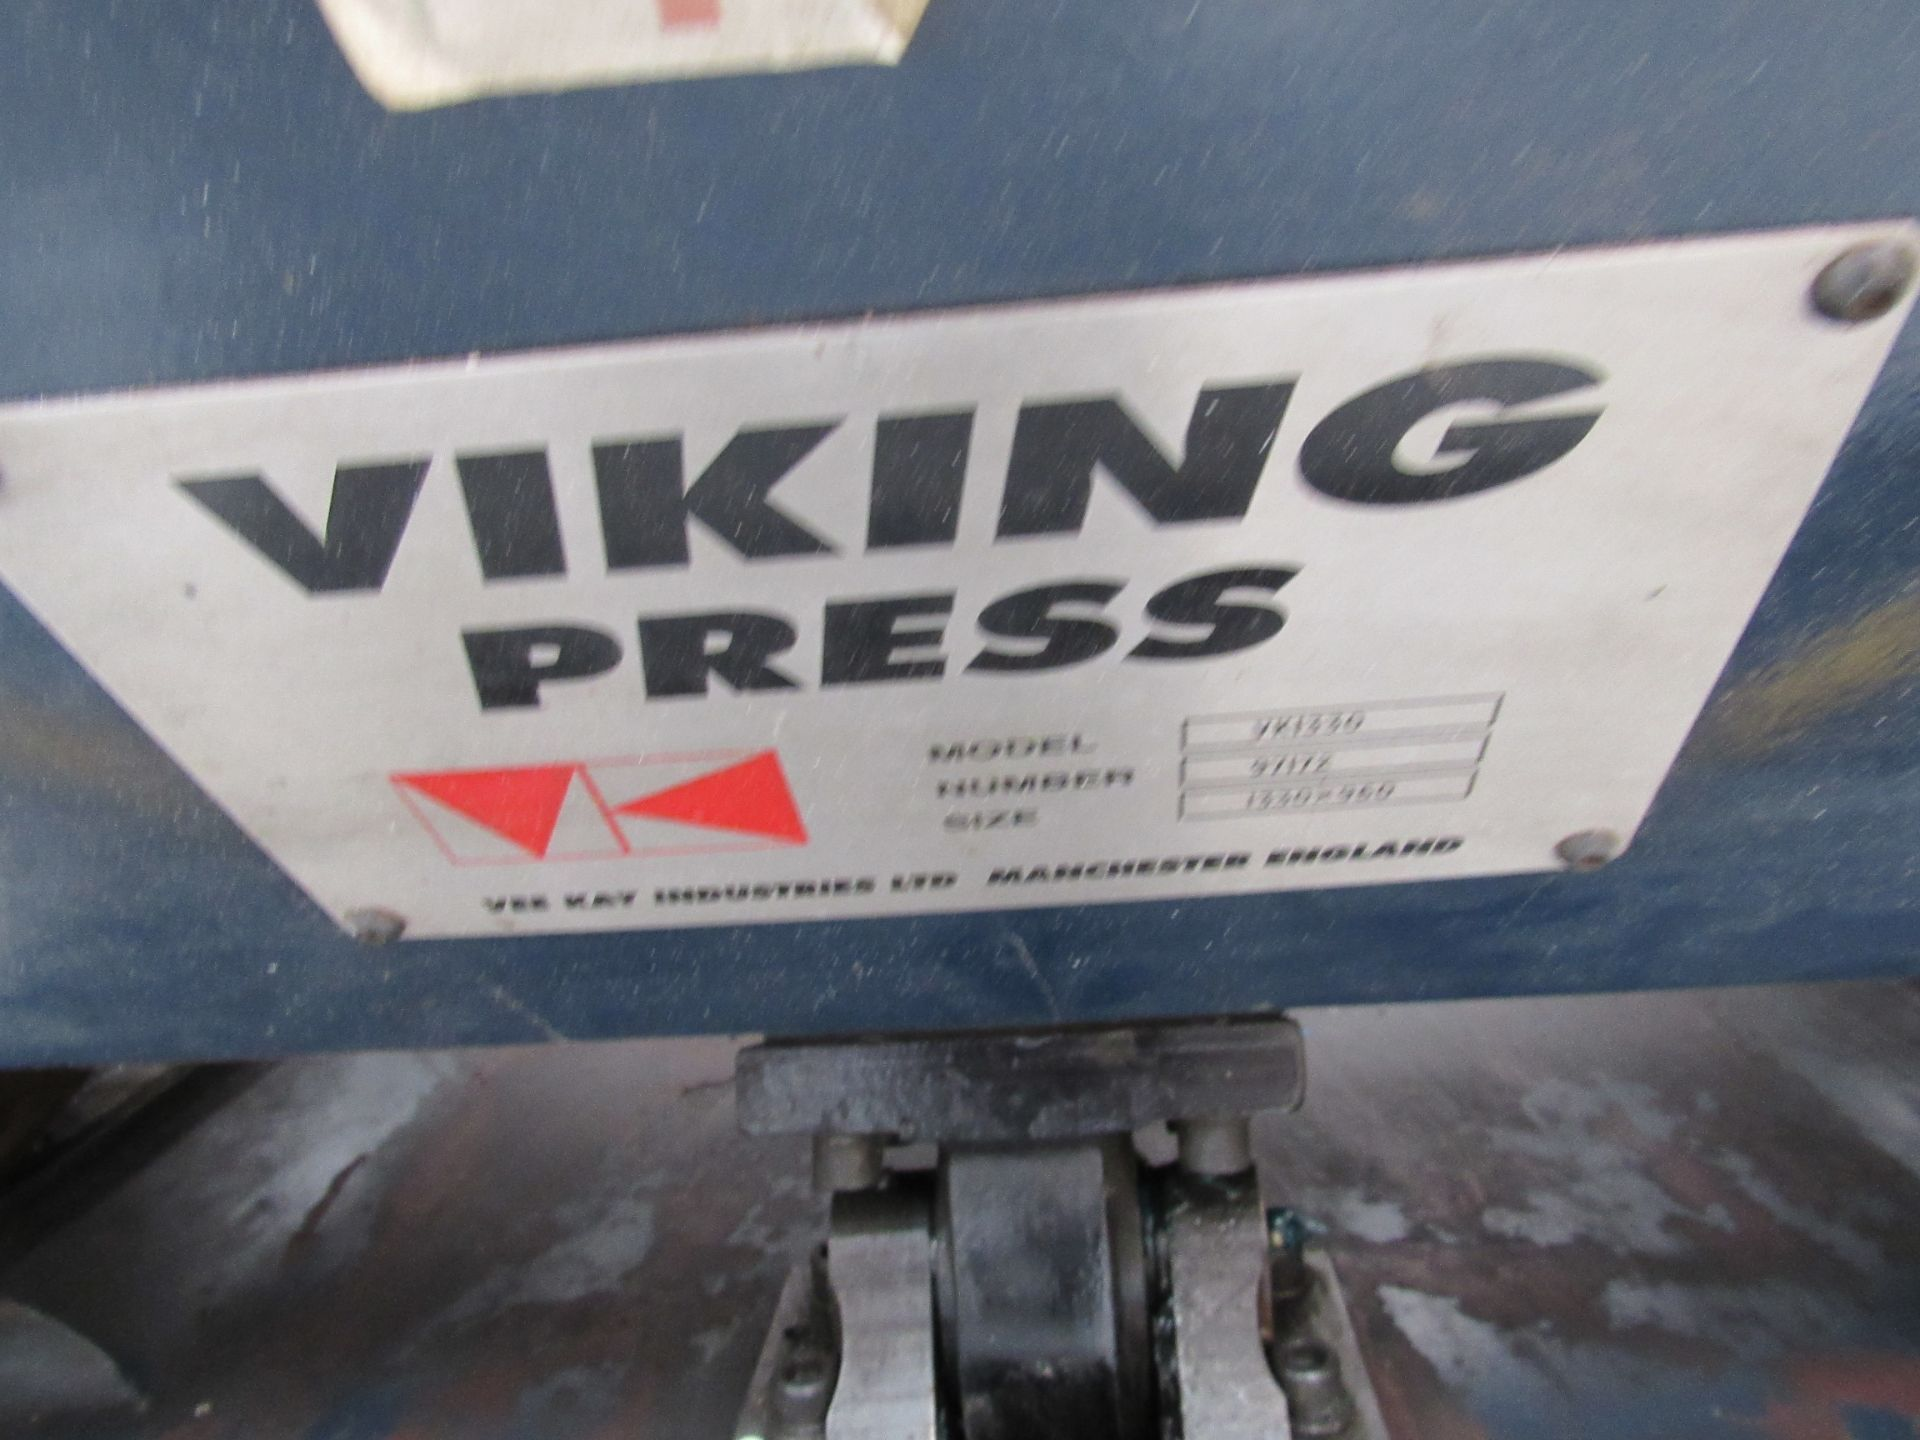 Viking Press VK1330 Cut and Crease Platen 1330 x 960mm Serial Number 97172 - Image 5 of 9